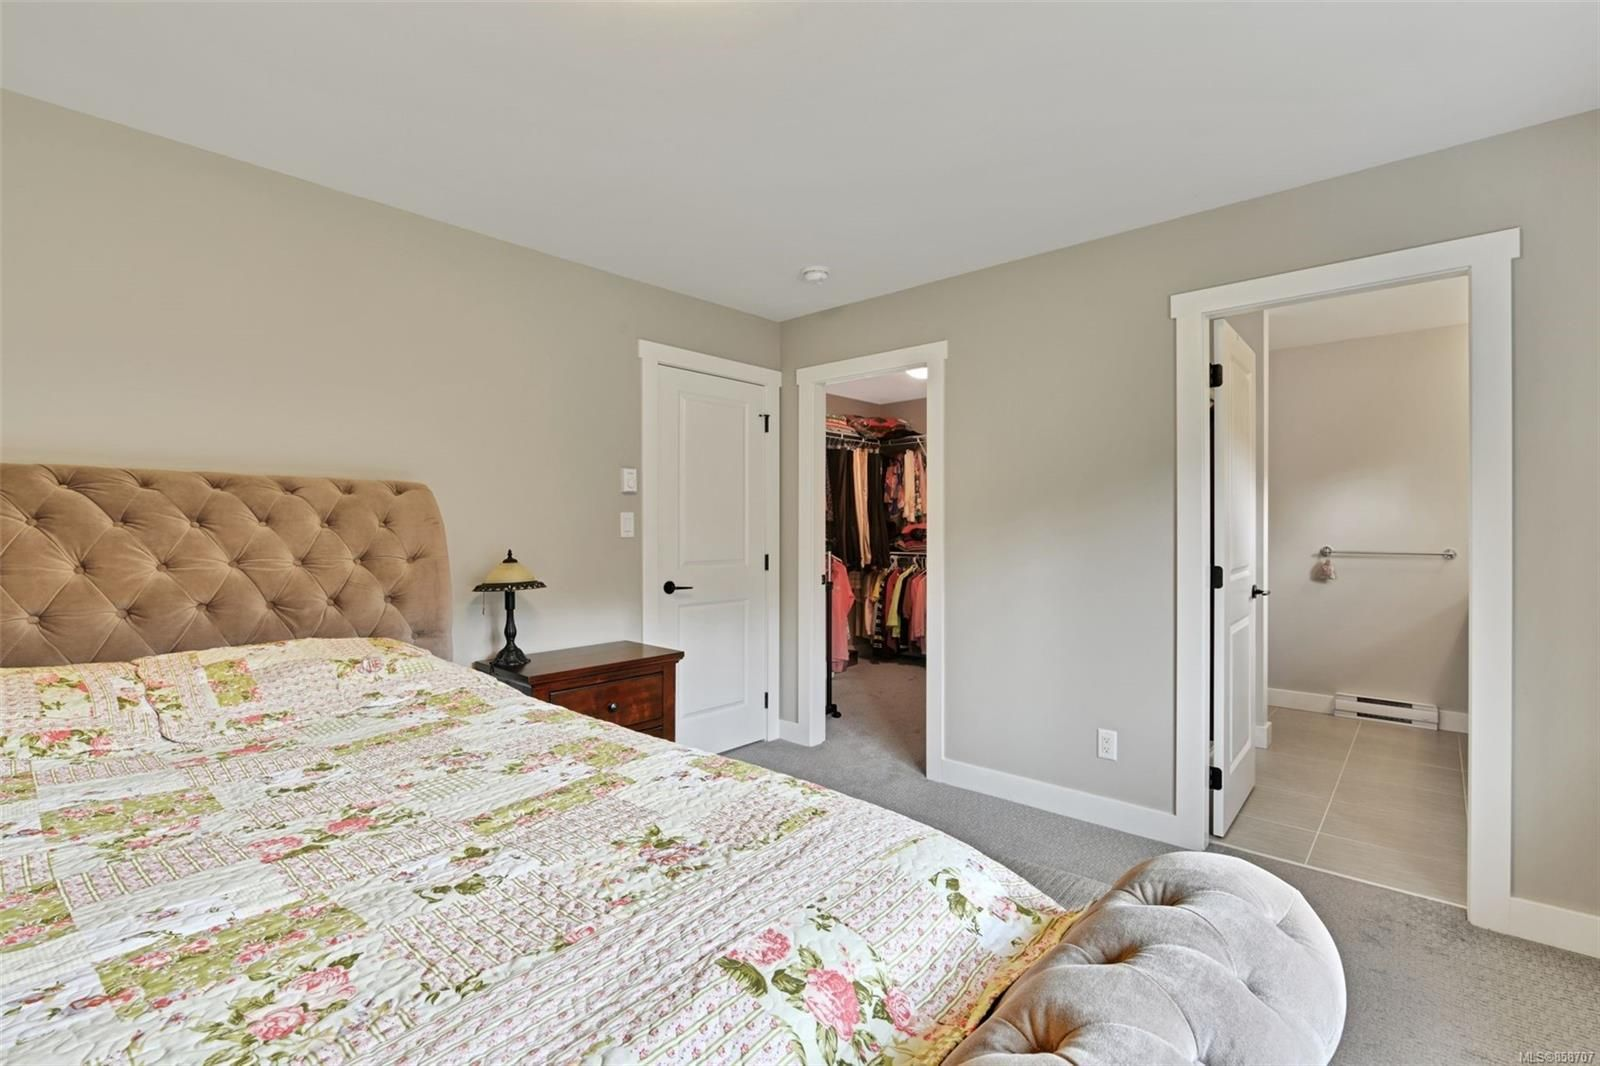 Photo 14: Photos: 1262 McLeod Pl in : La Happy Valley House for sale (Langford)  : MLS®# 858707